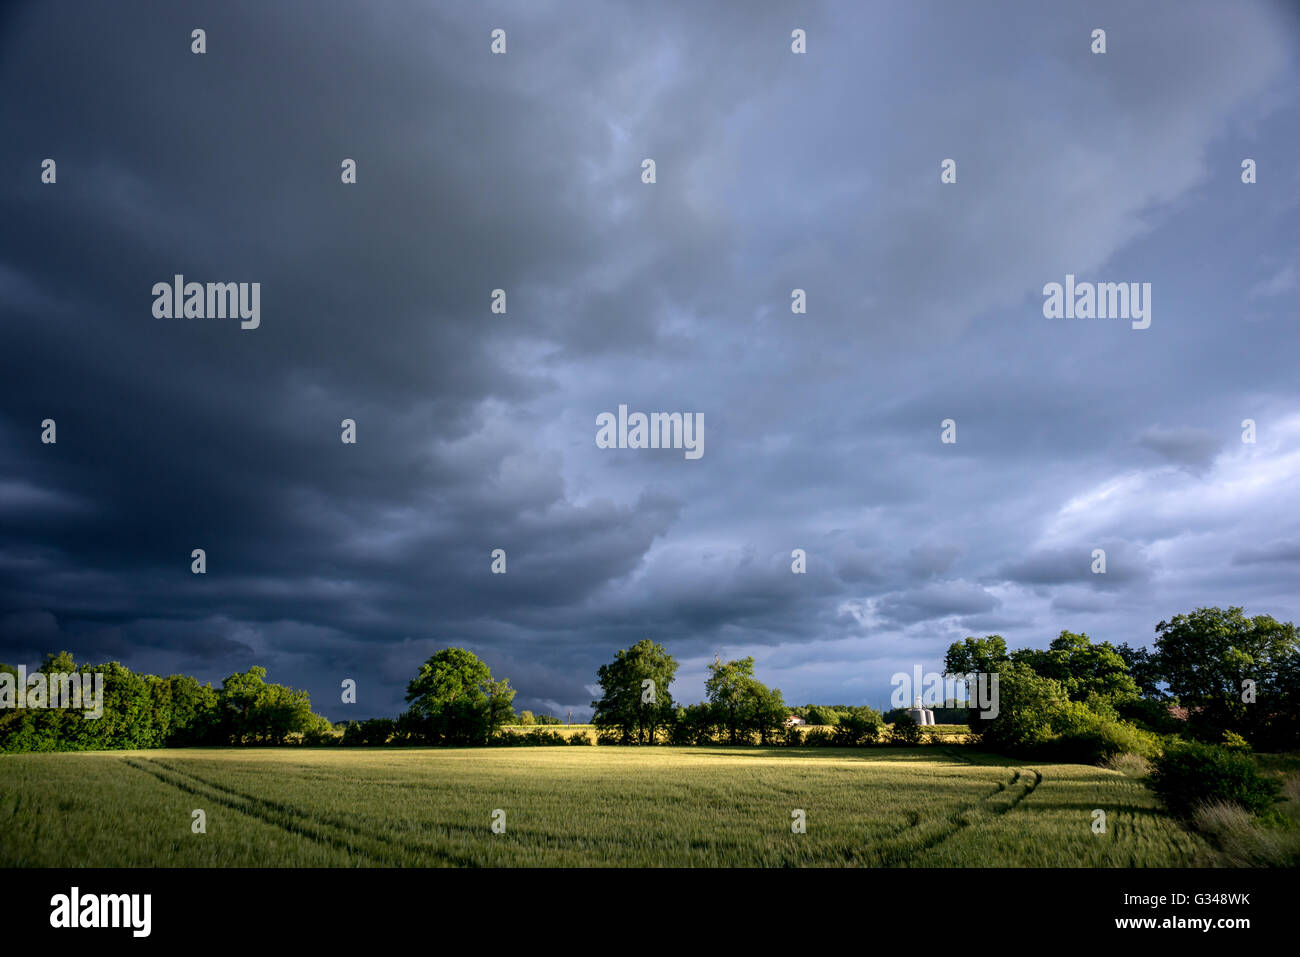 Storm clouds over the fields of La Charente in southwestern France. - Stock Image